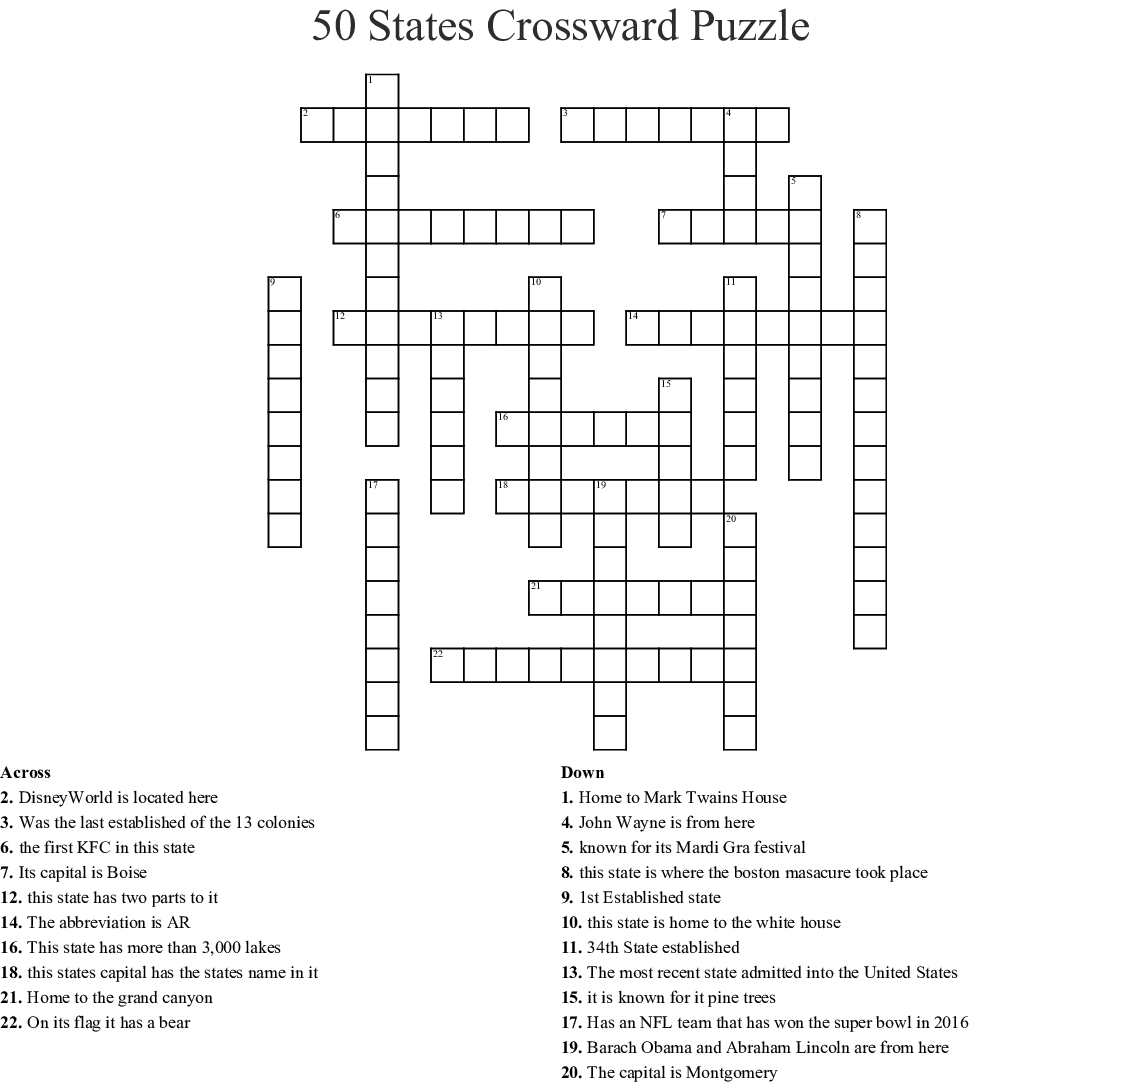 50 States Crossward Puzzle Crossword - Wordmint - 50 States Crossword Puzzle Printable